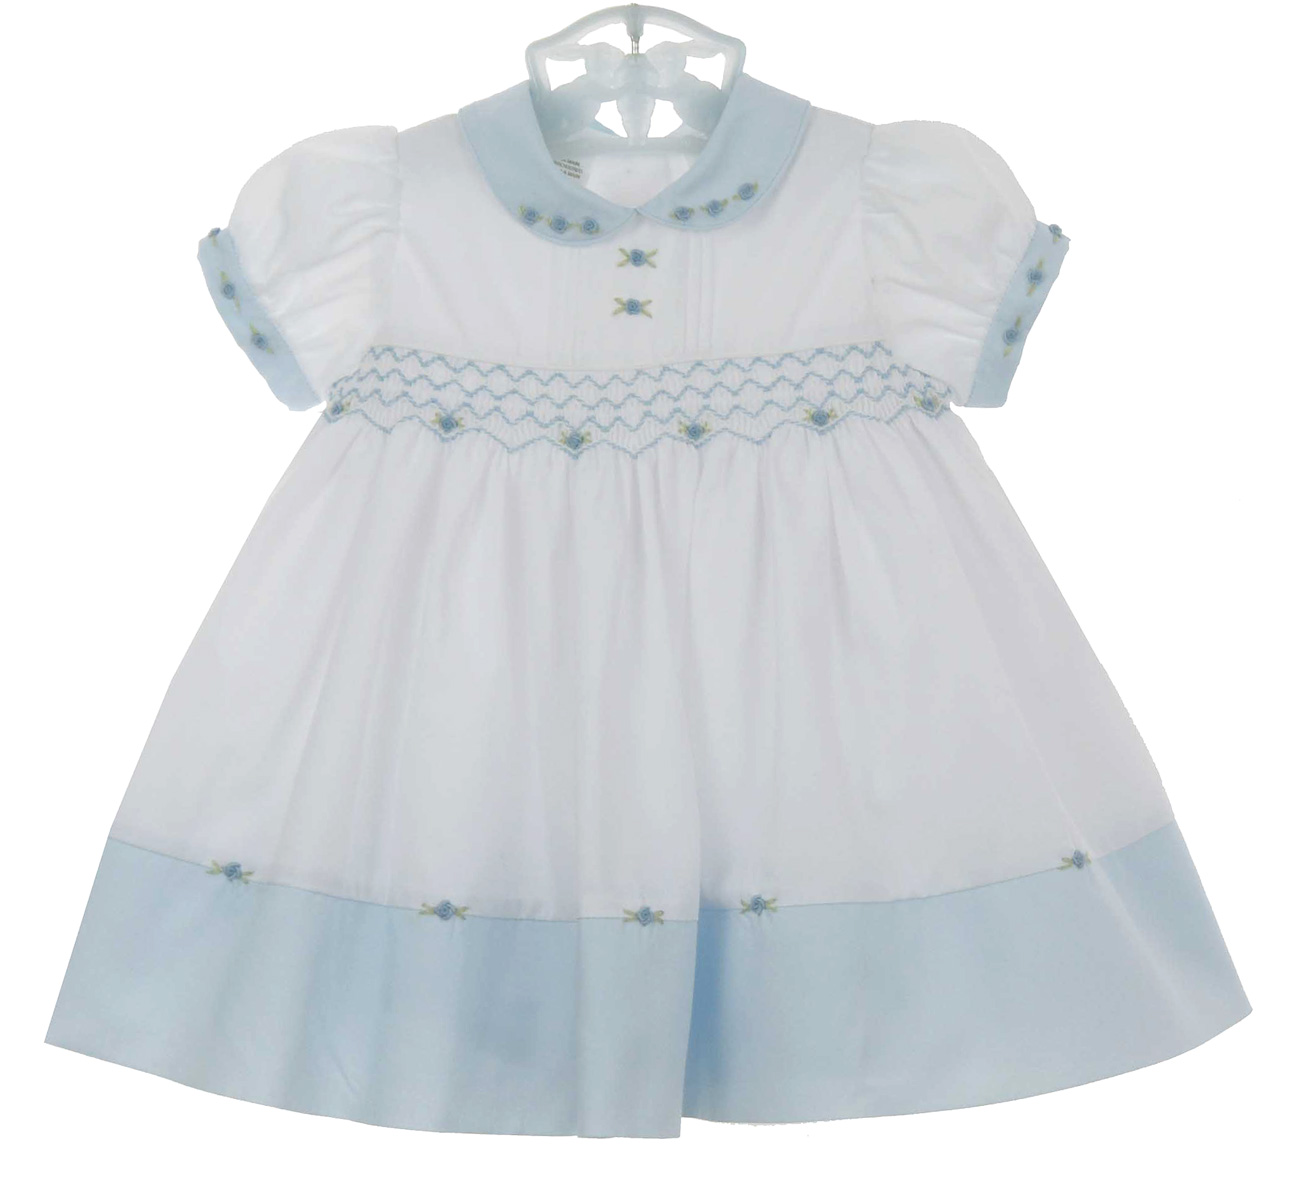 488a93b326f91 Sarah Louise vintage style blue and white smocked dress